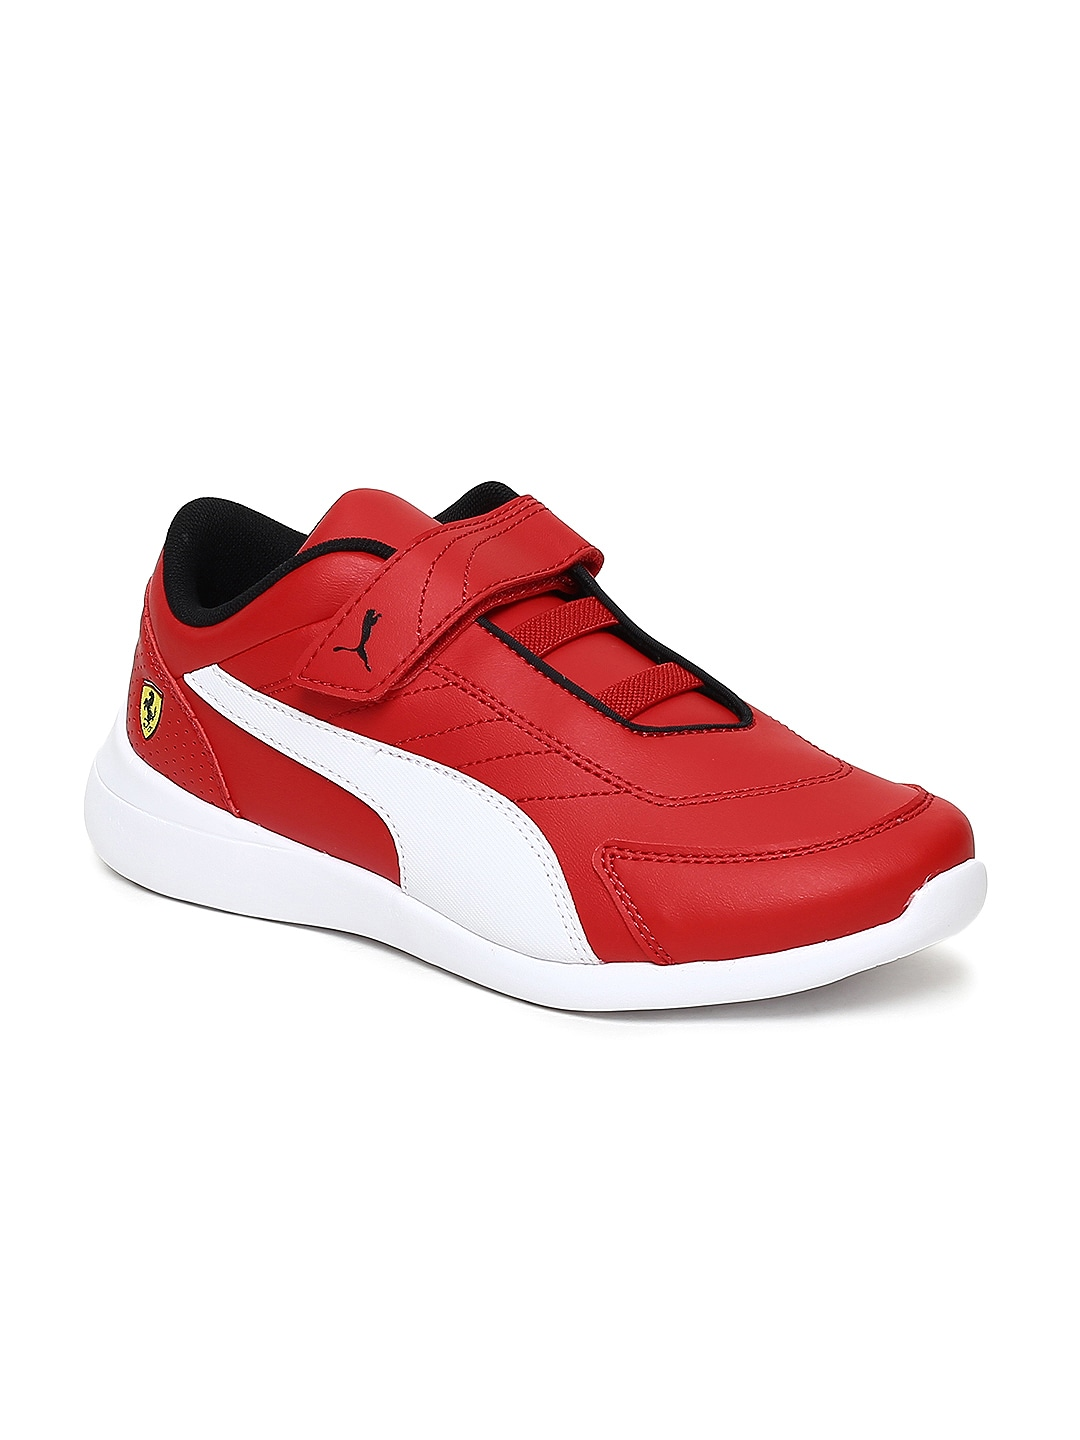 98386c101580 Red Ferrari Puma Shoes - Buy Red Ferrari Puma Shoes online in India